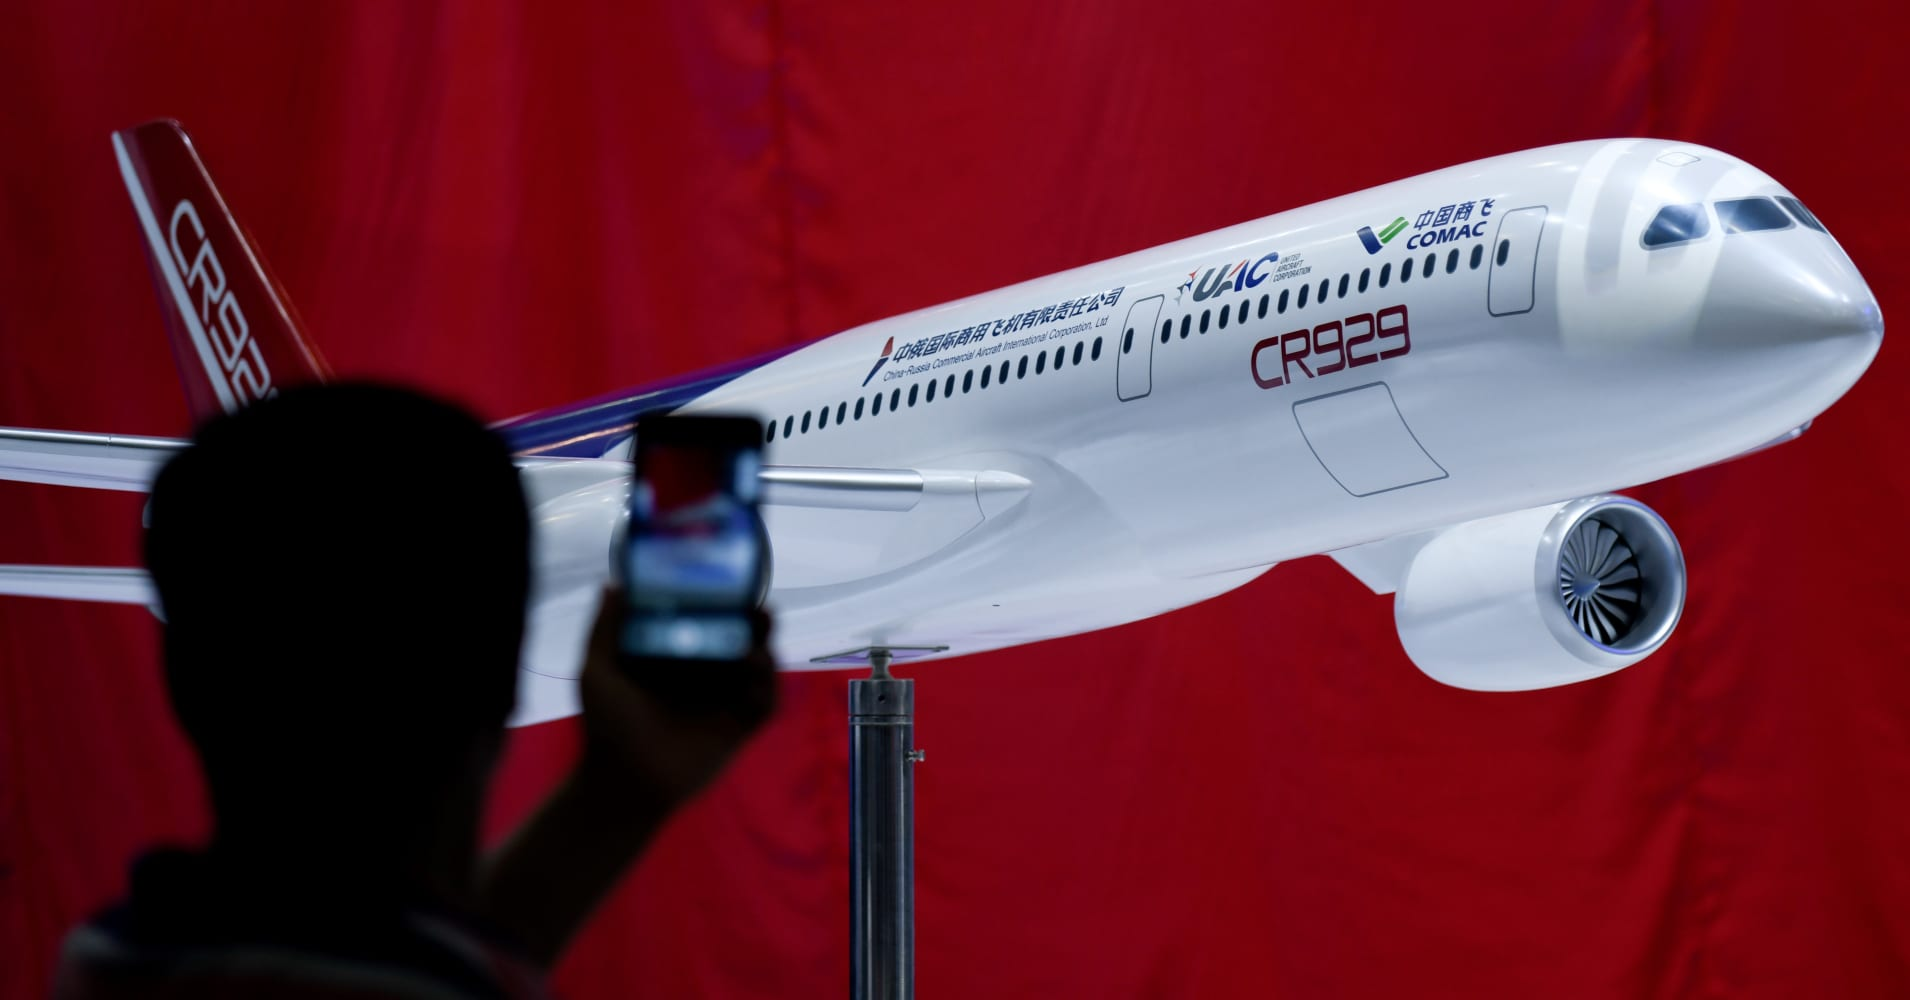 China and Russia unveil life-size model of widebody jet at Zhuhai airshow